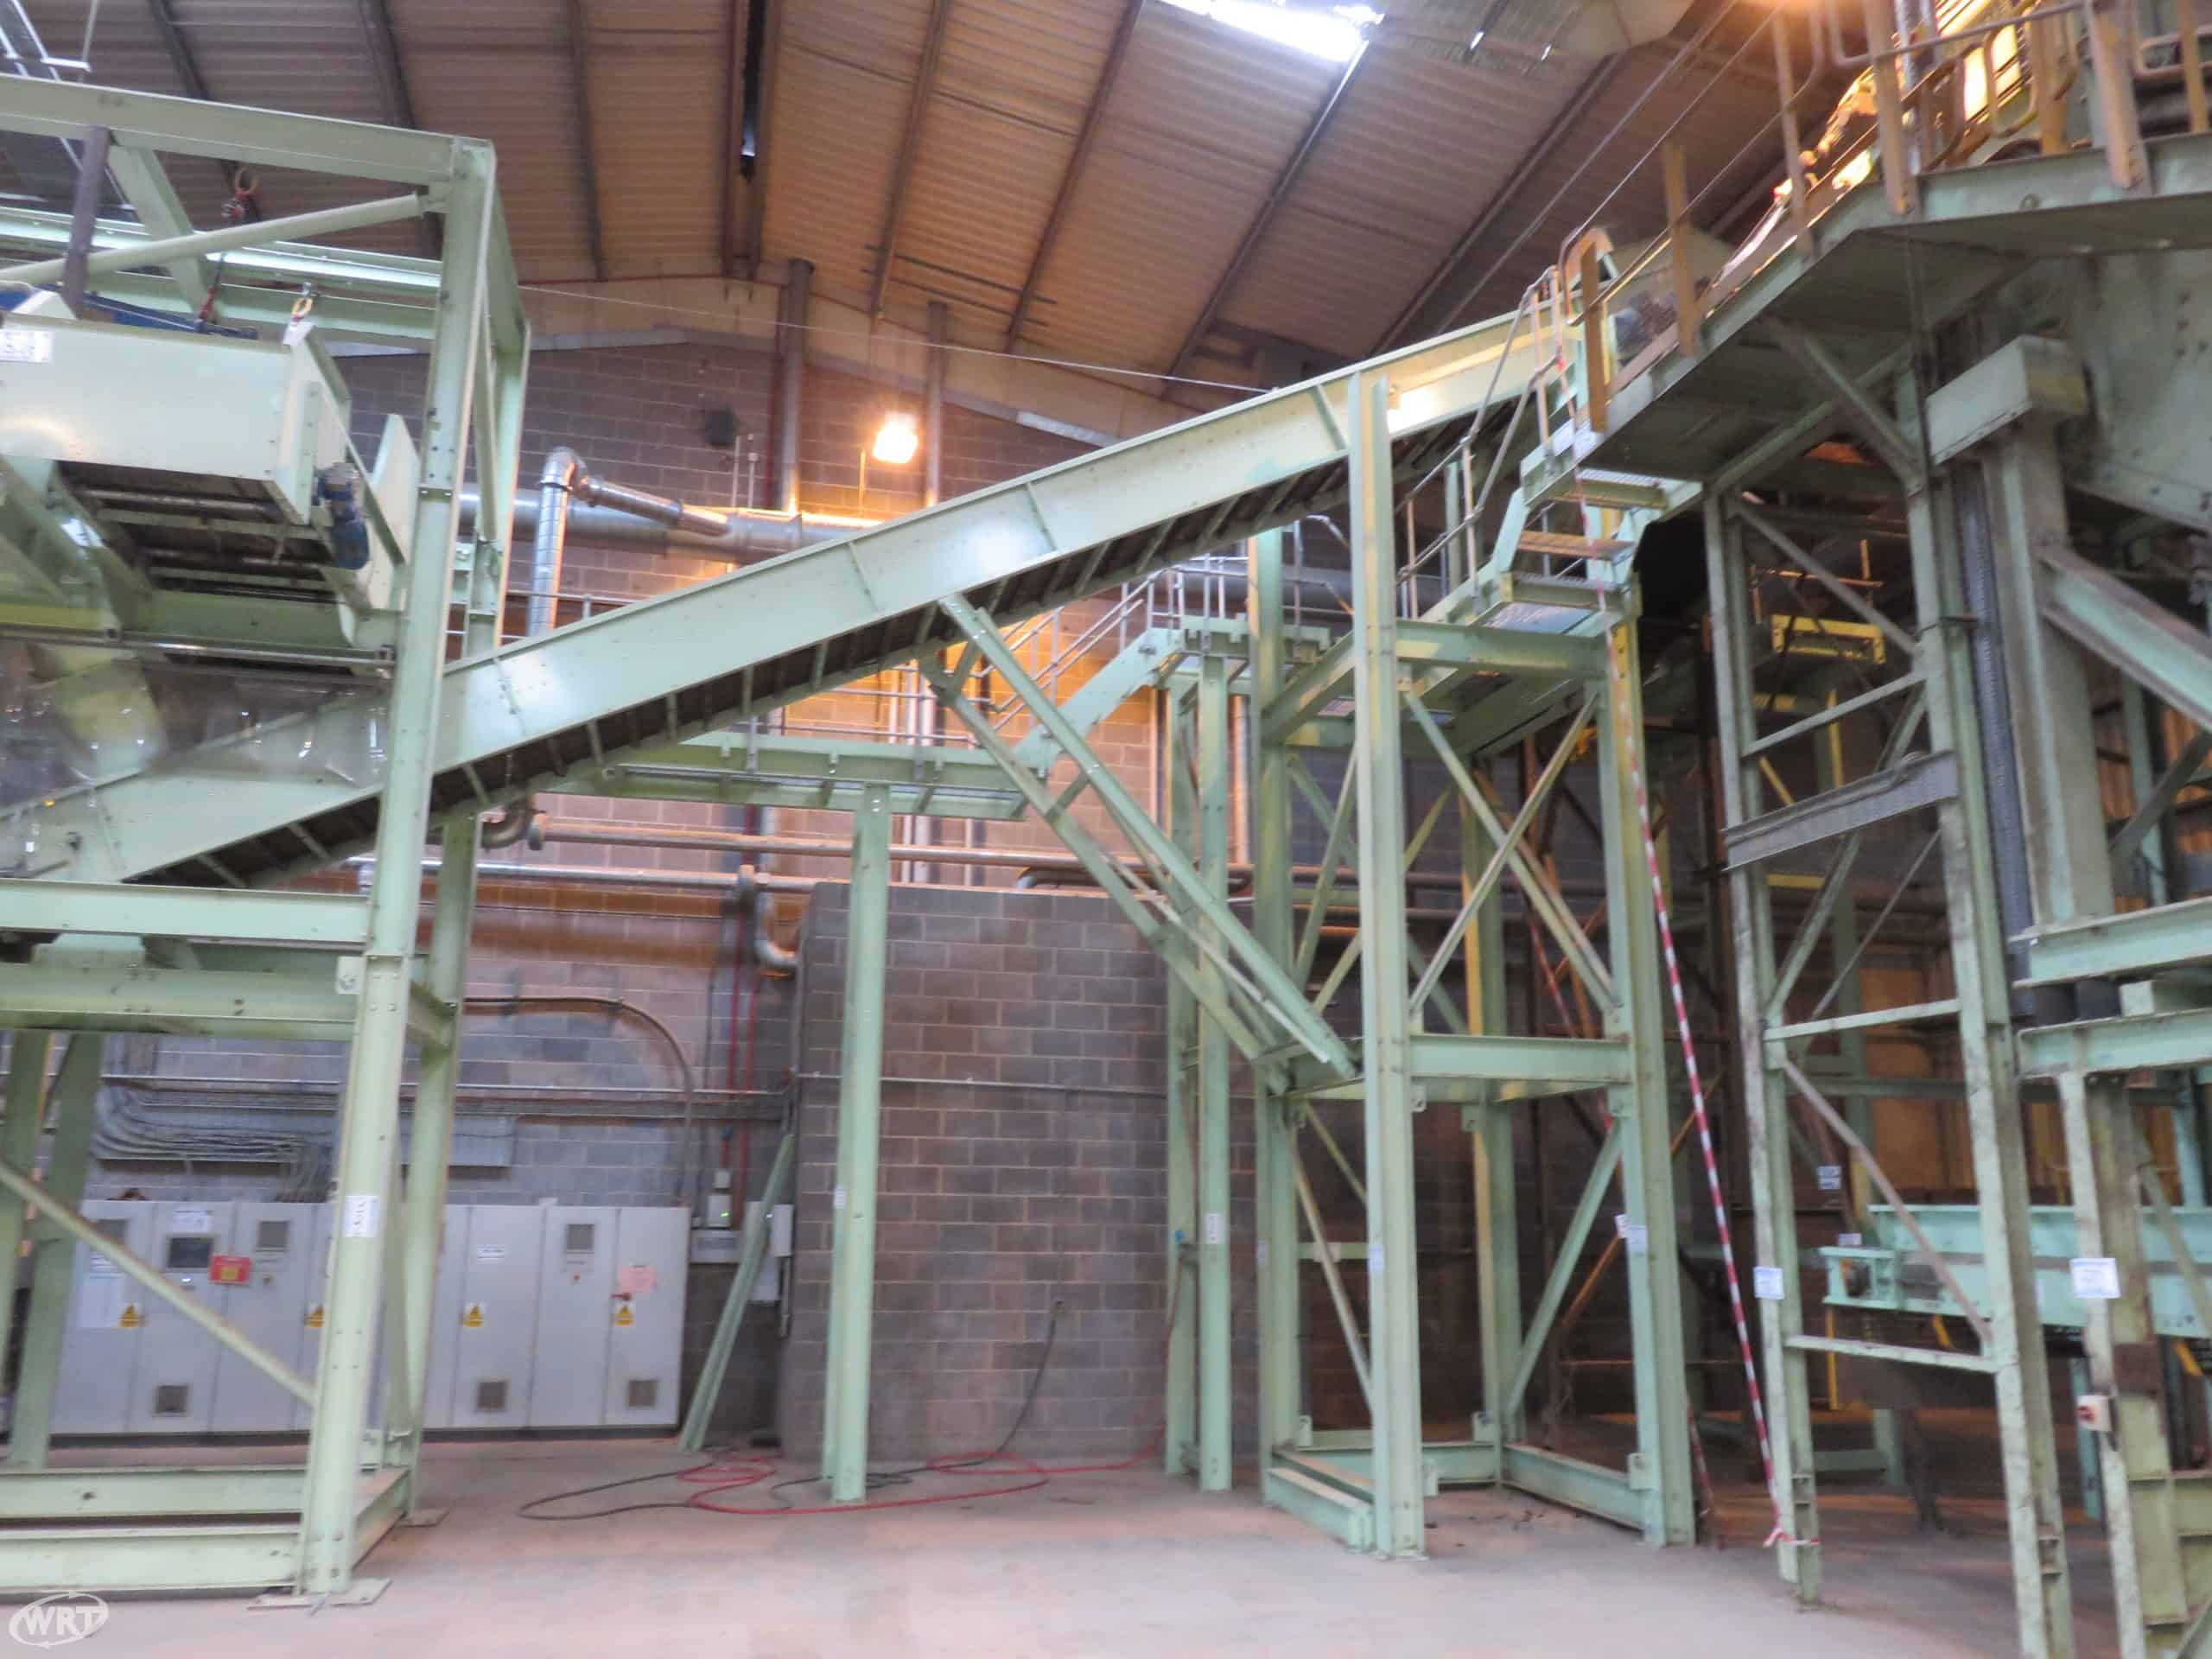 Waste Conveyor 1 m Wide x 12.25 Long